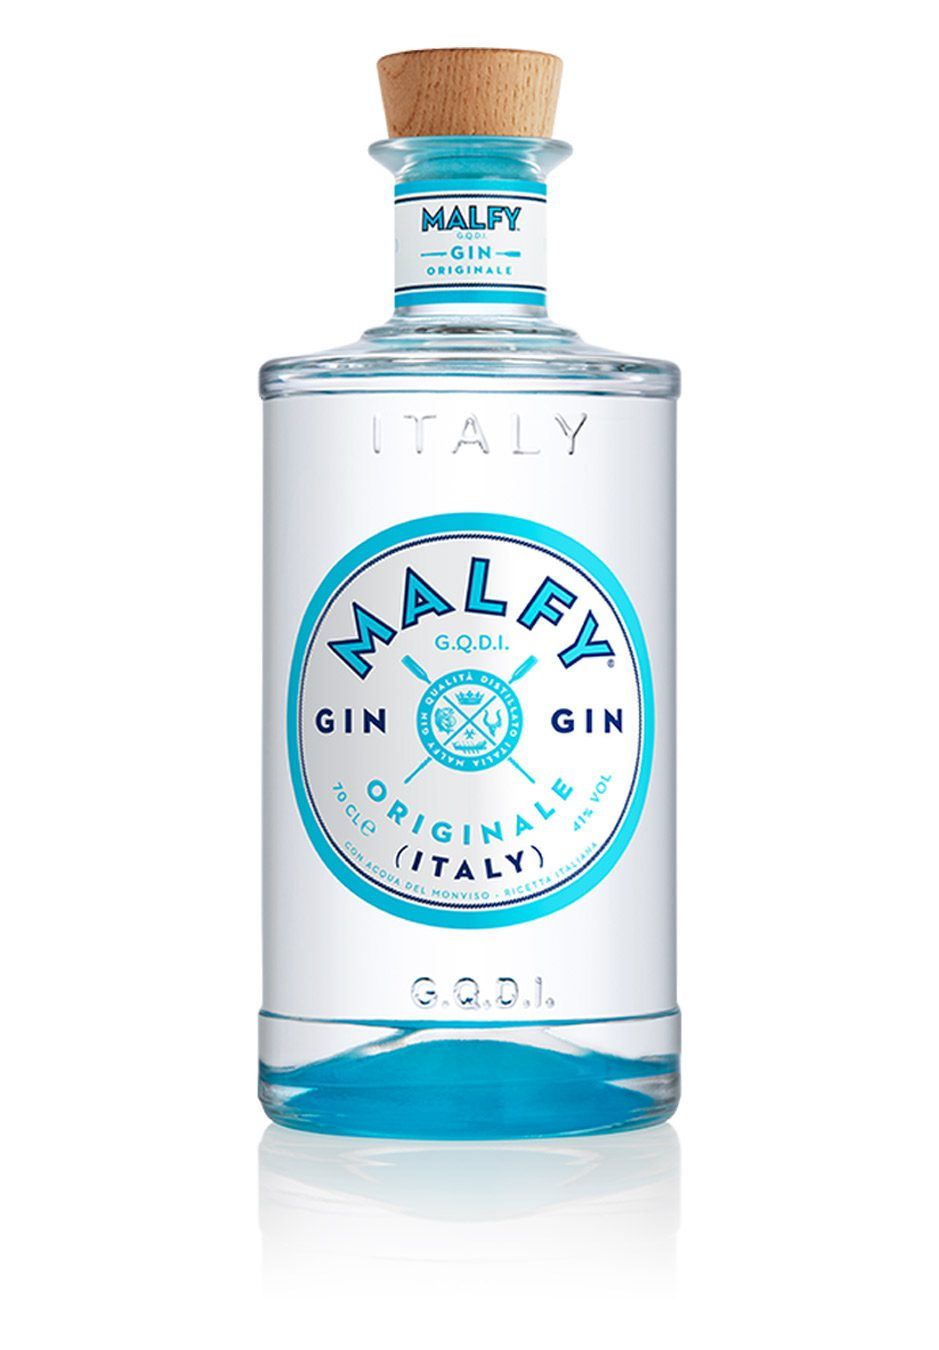 Malfy Originale Gin | 70cl | Bottle